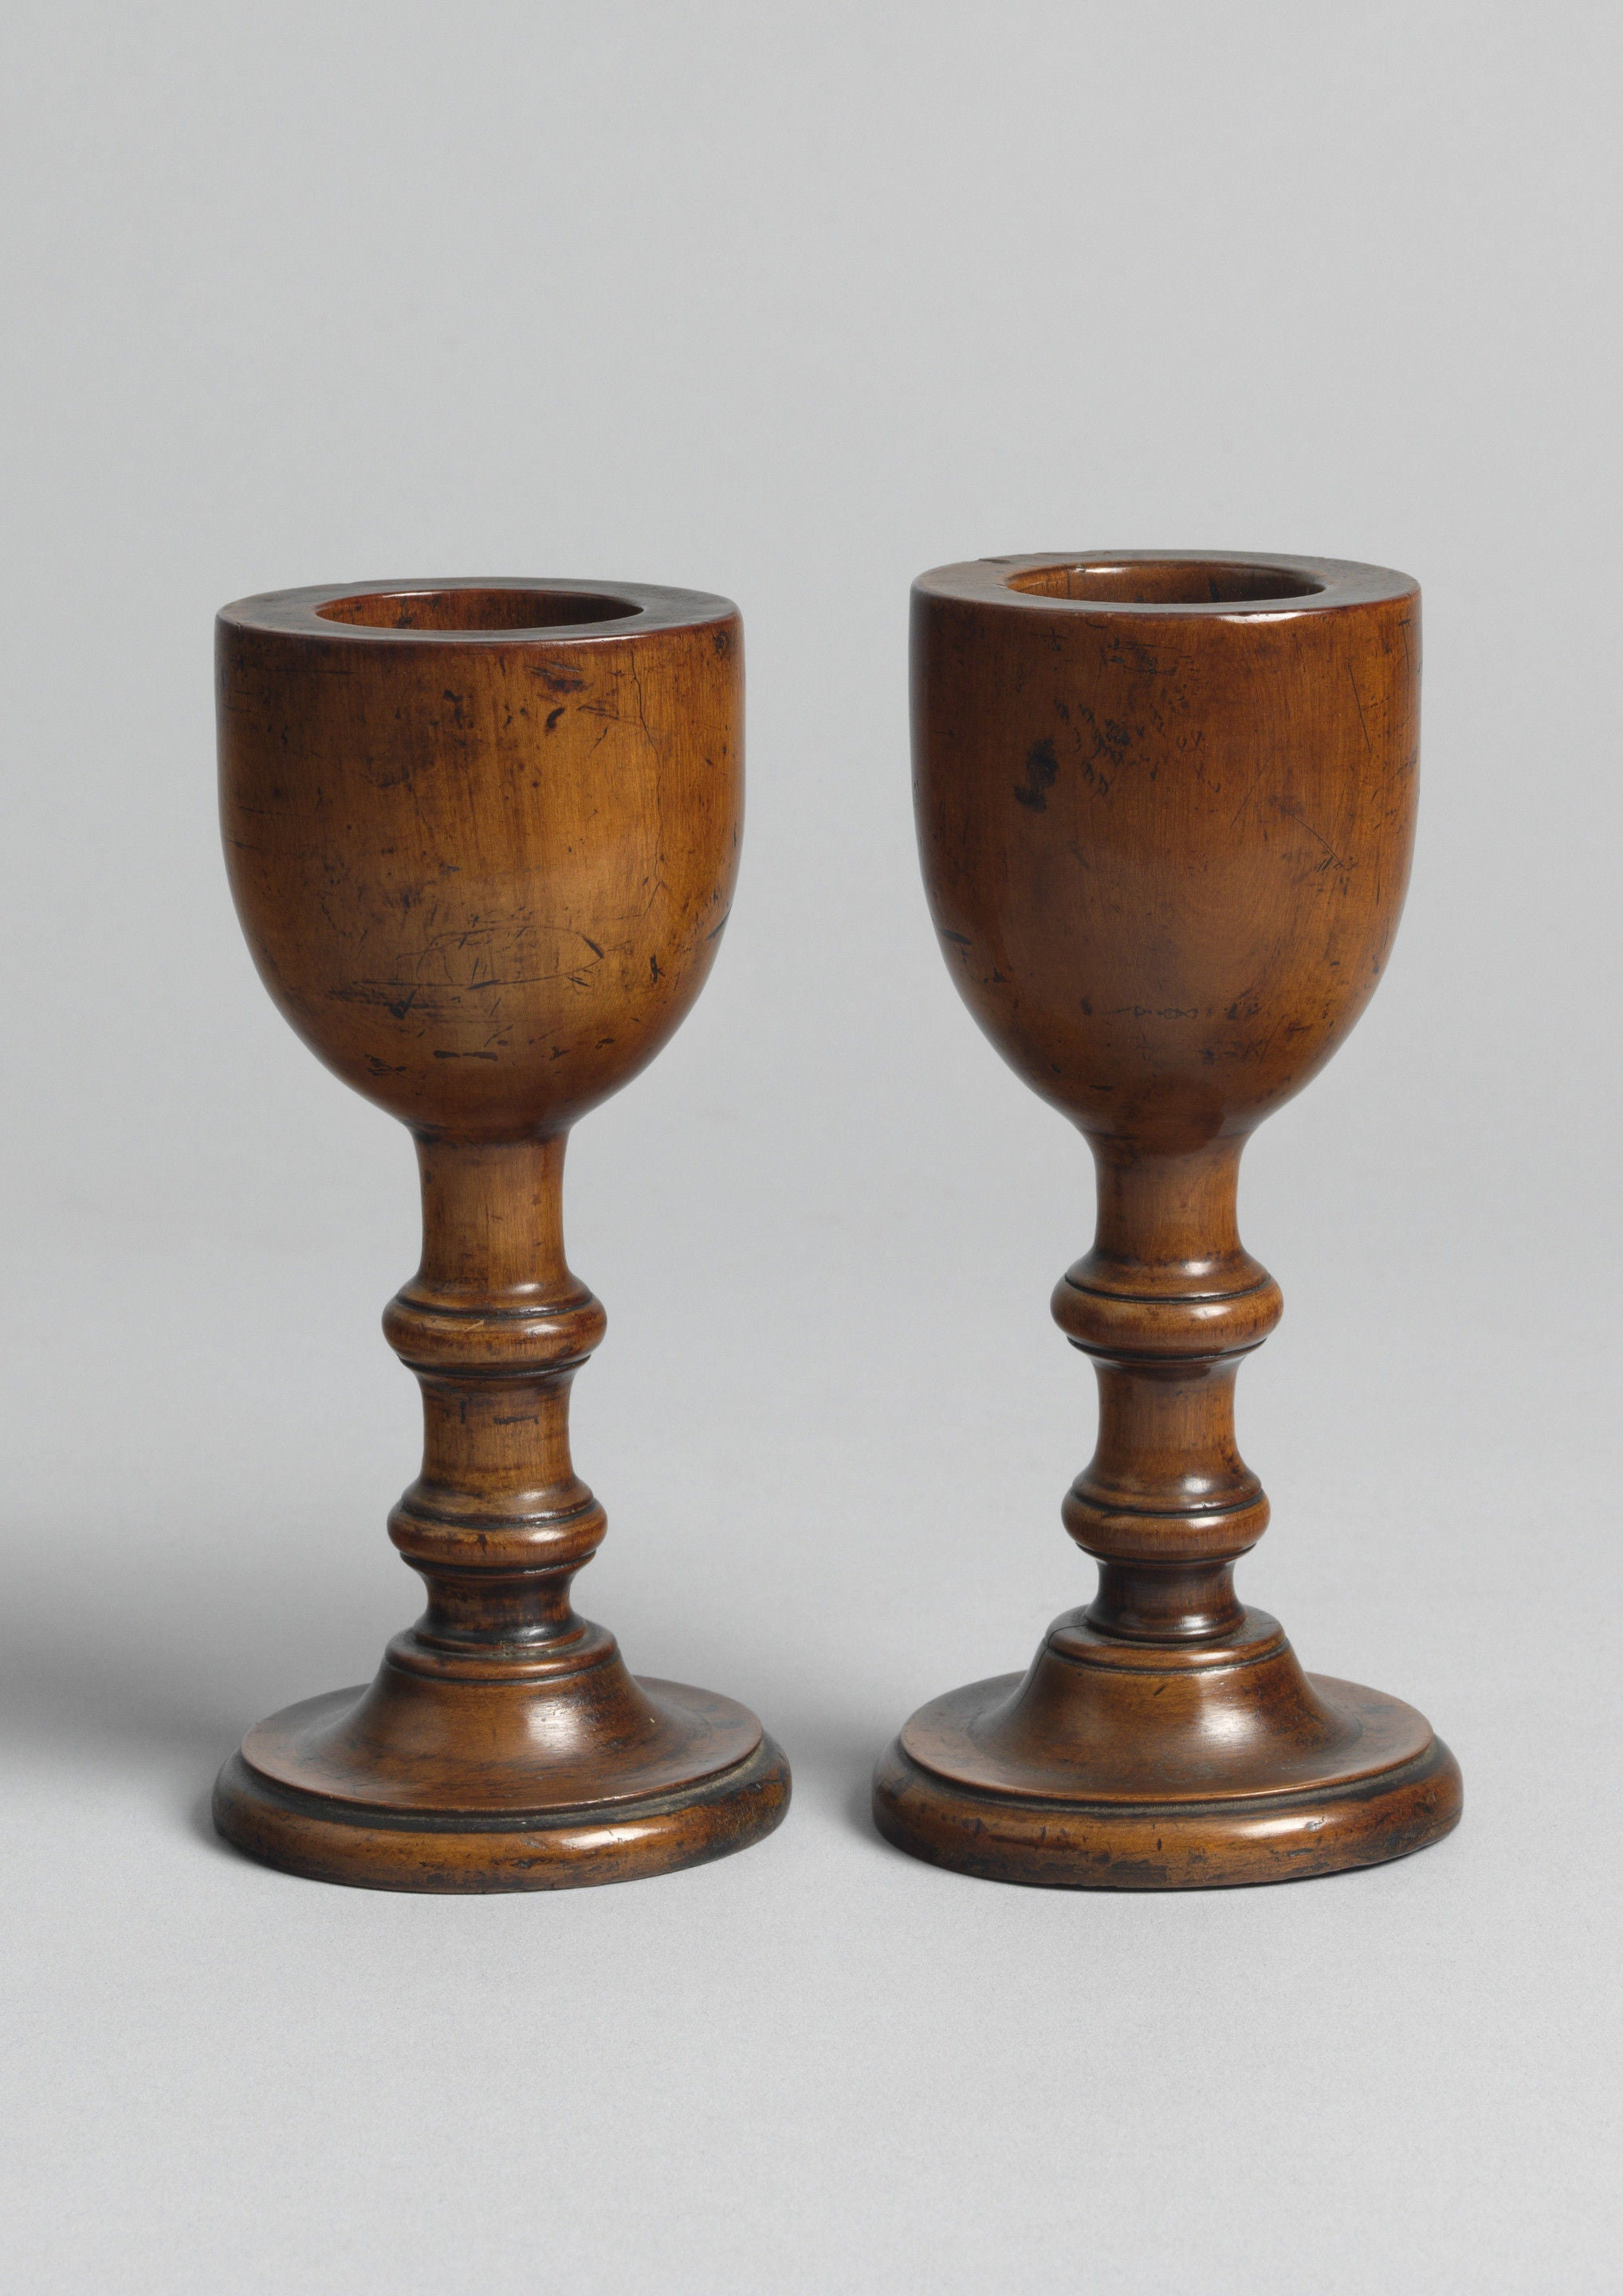 Fine Pair of Early Turned Vessels